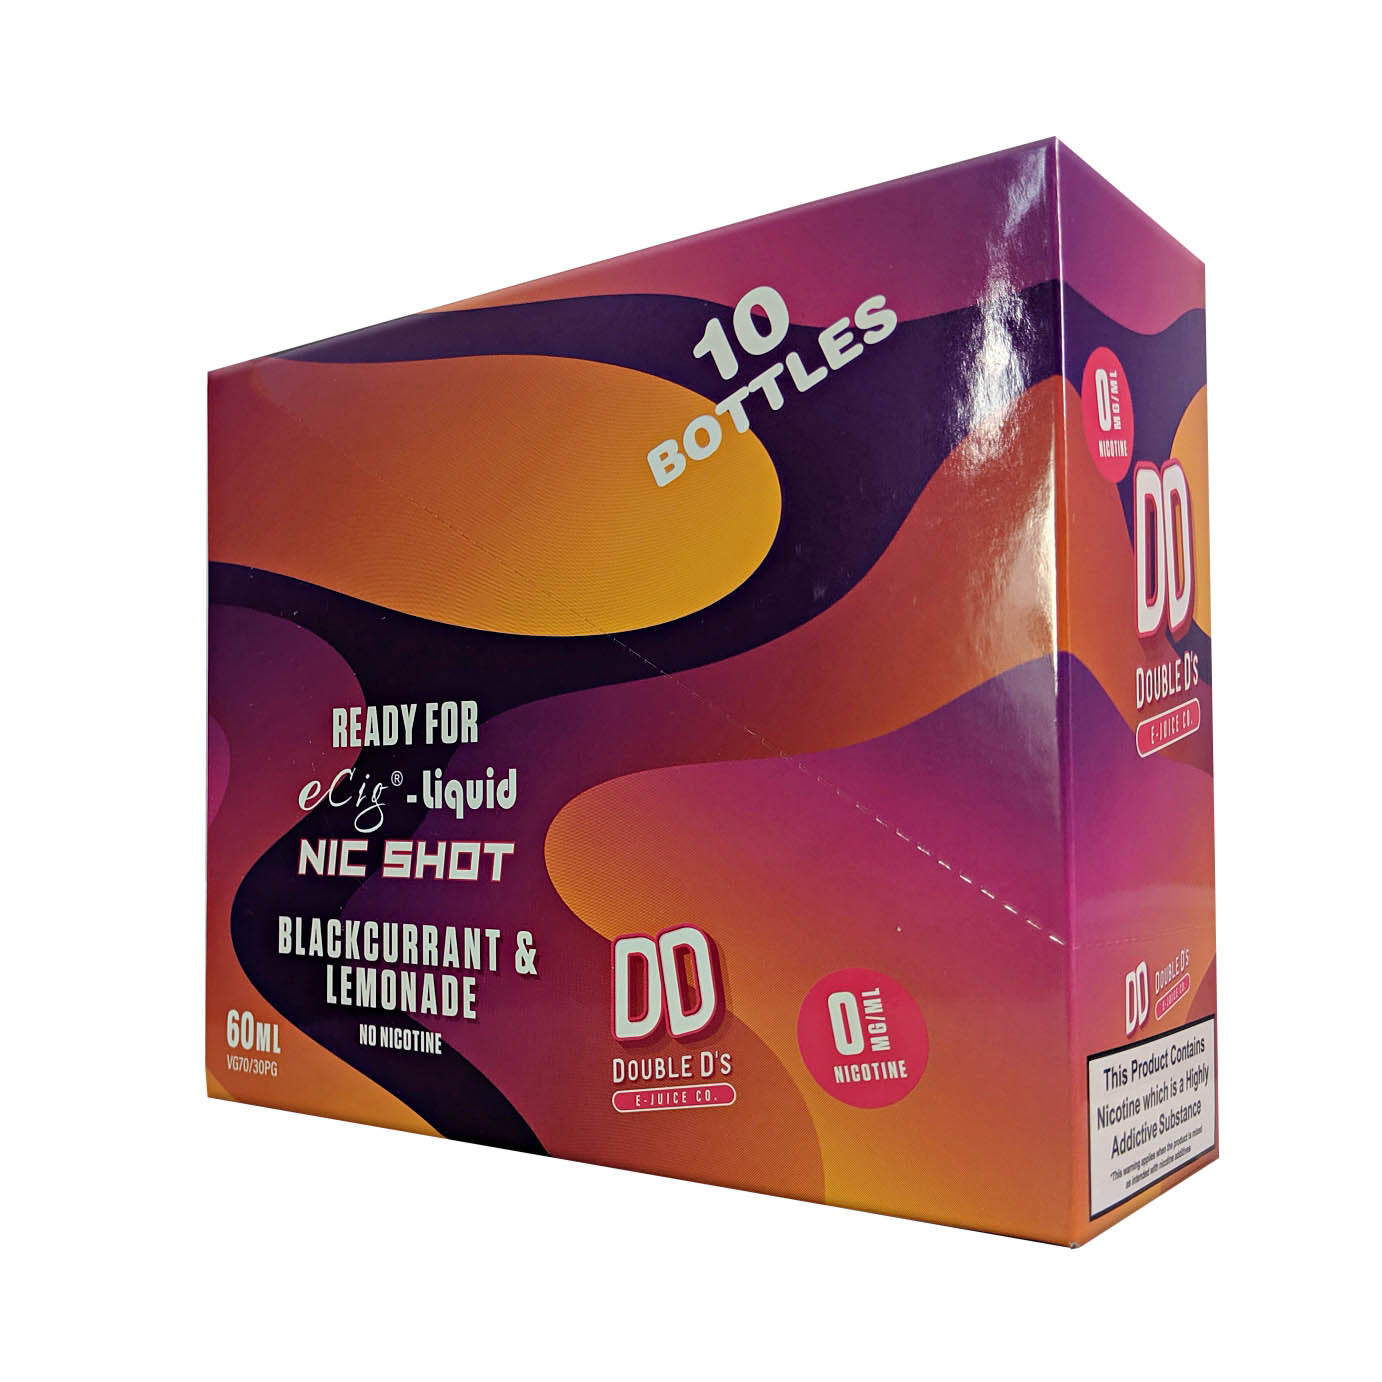 DD Double D's 10 Pack Blackcurrant & Lemonade 50ml E-Liquid